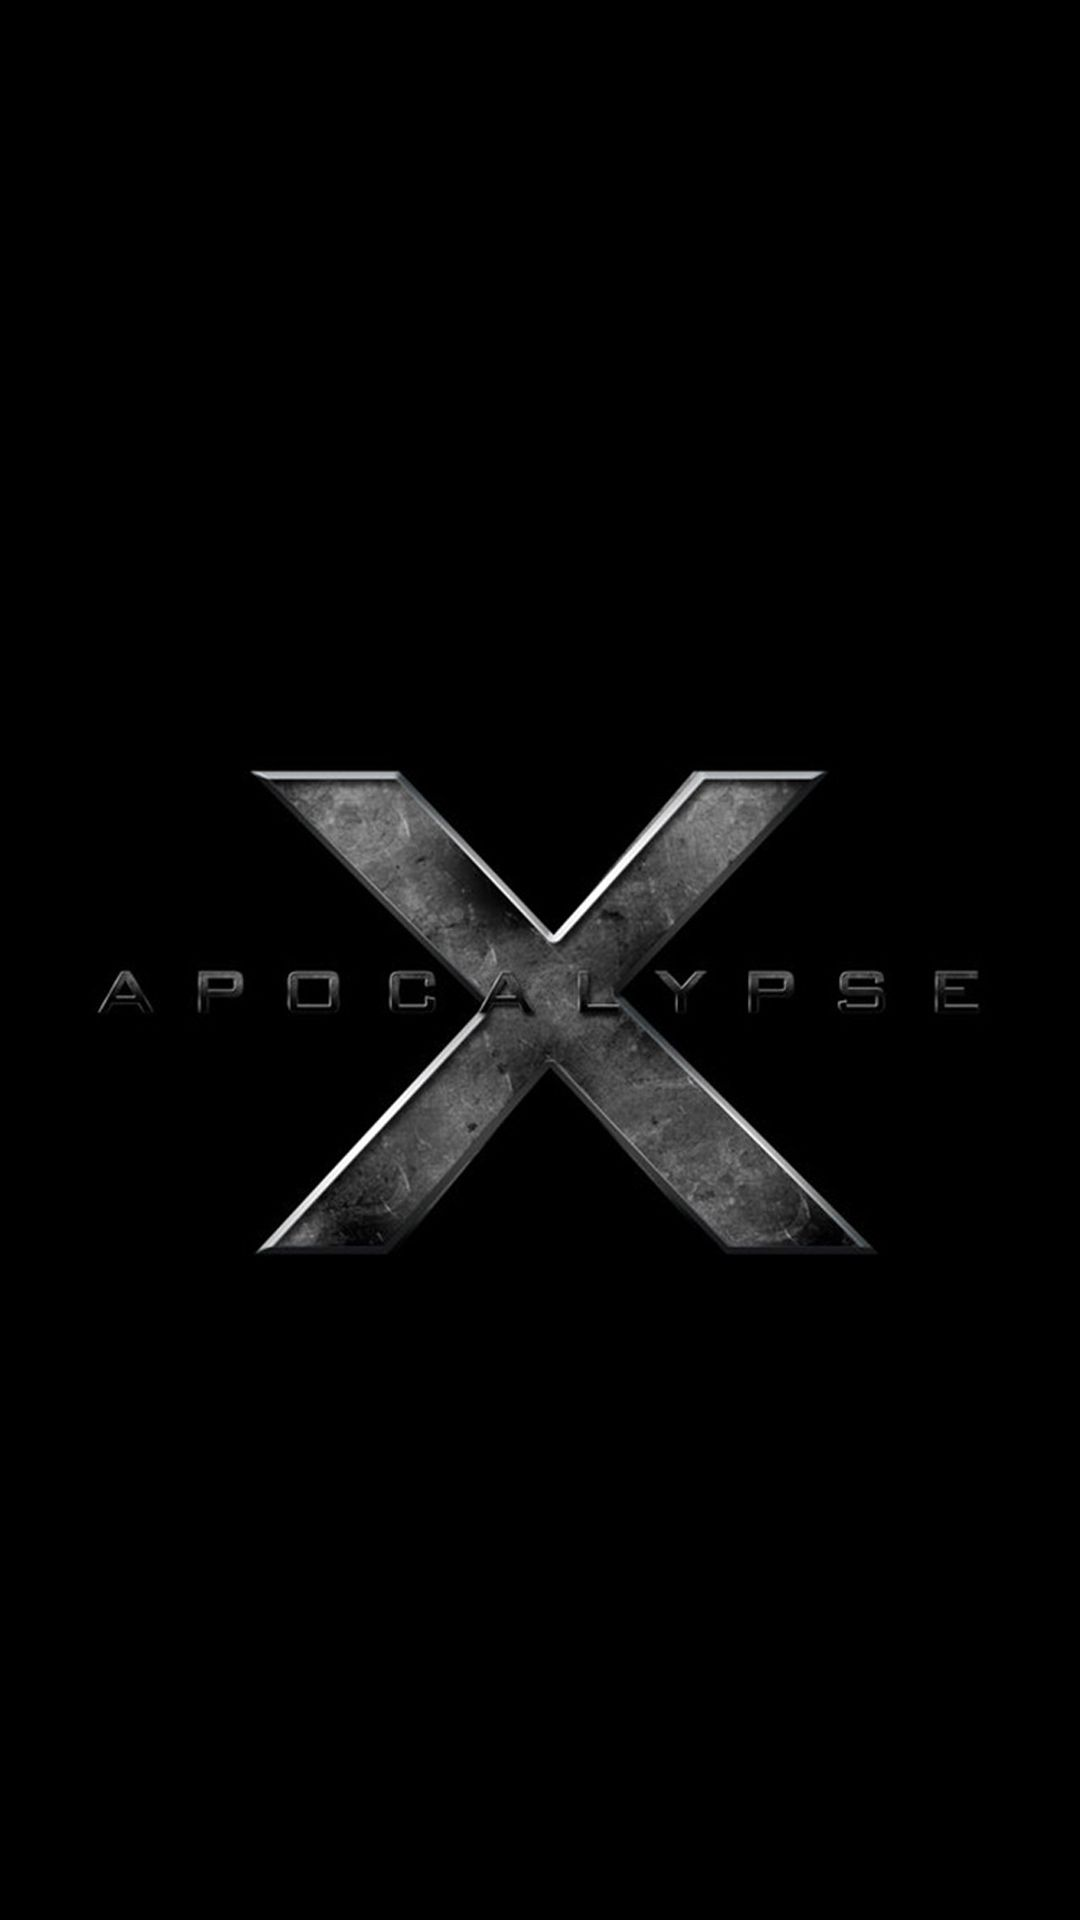 1080x1920 X-Men Apocalypse iPhone 6+ HD Wallpaper HD - Free Download | iPhoneWalls